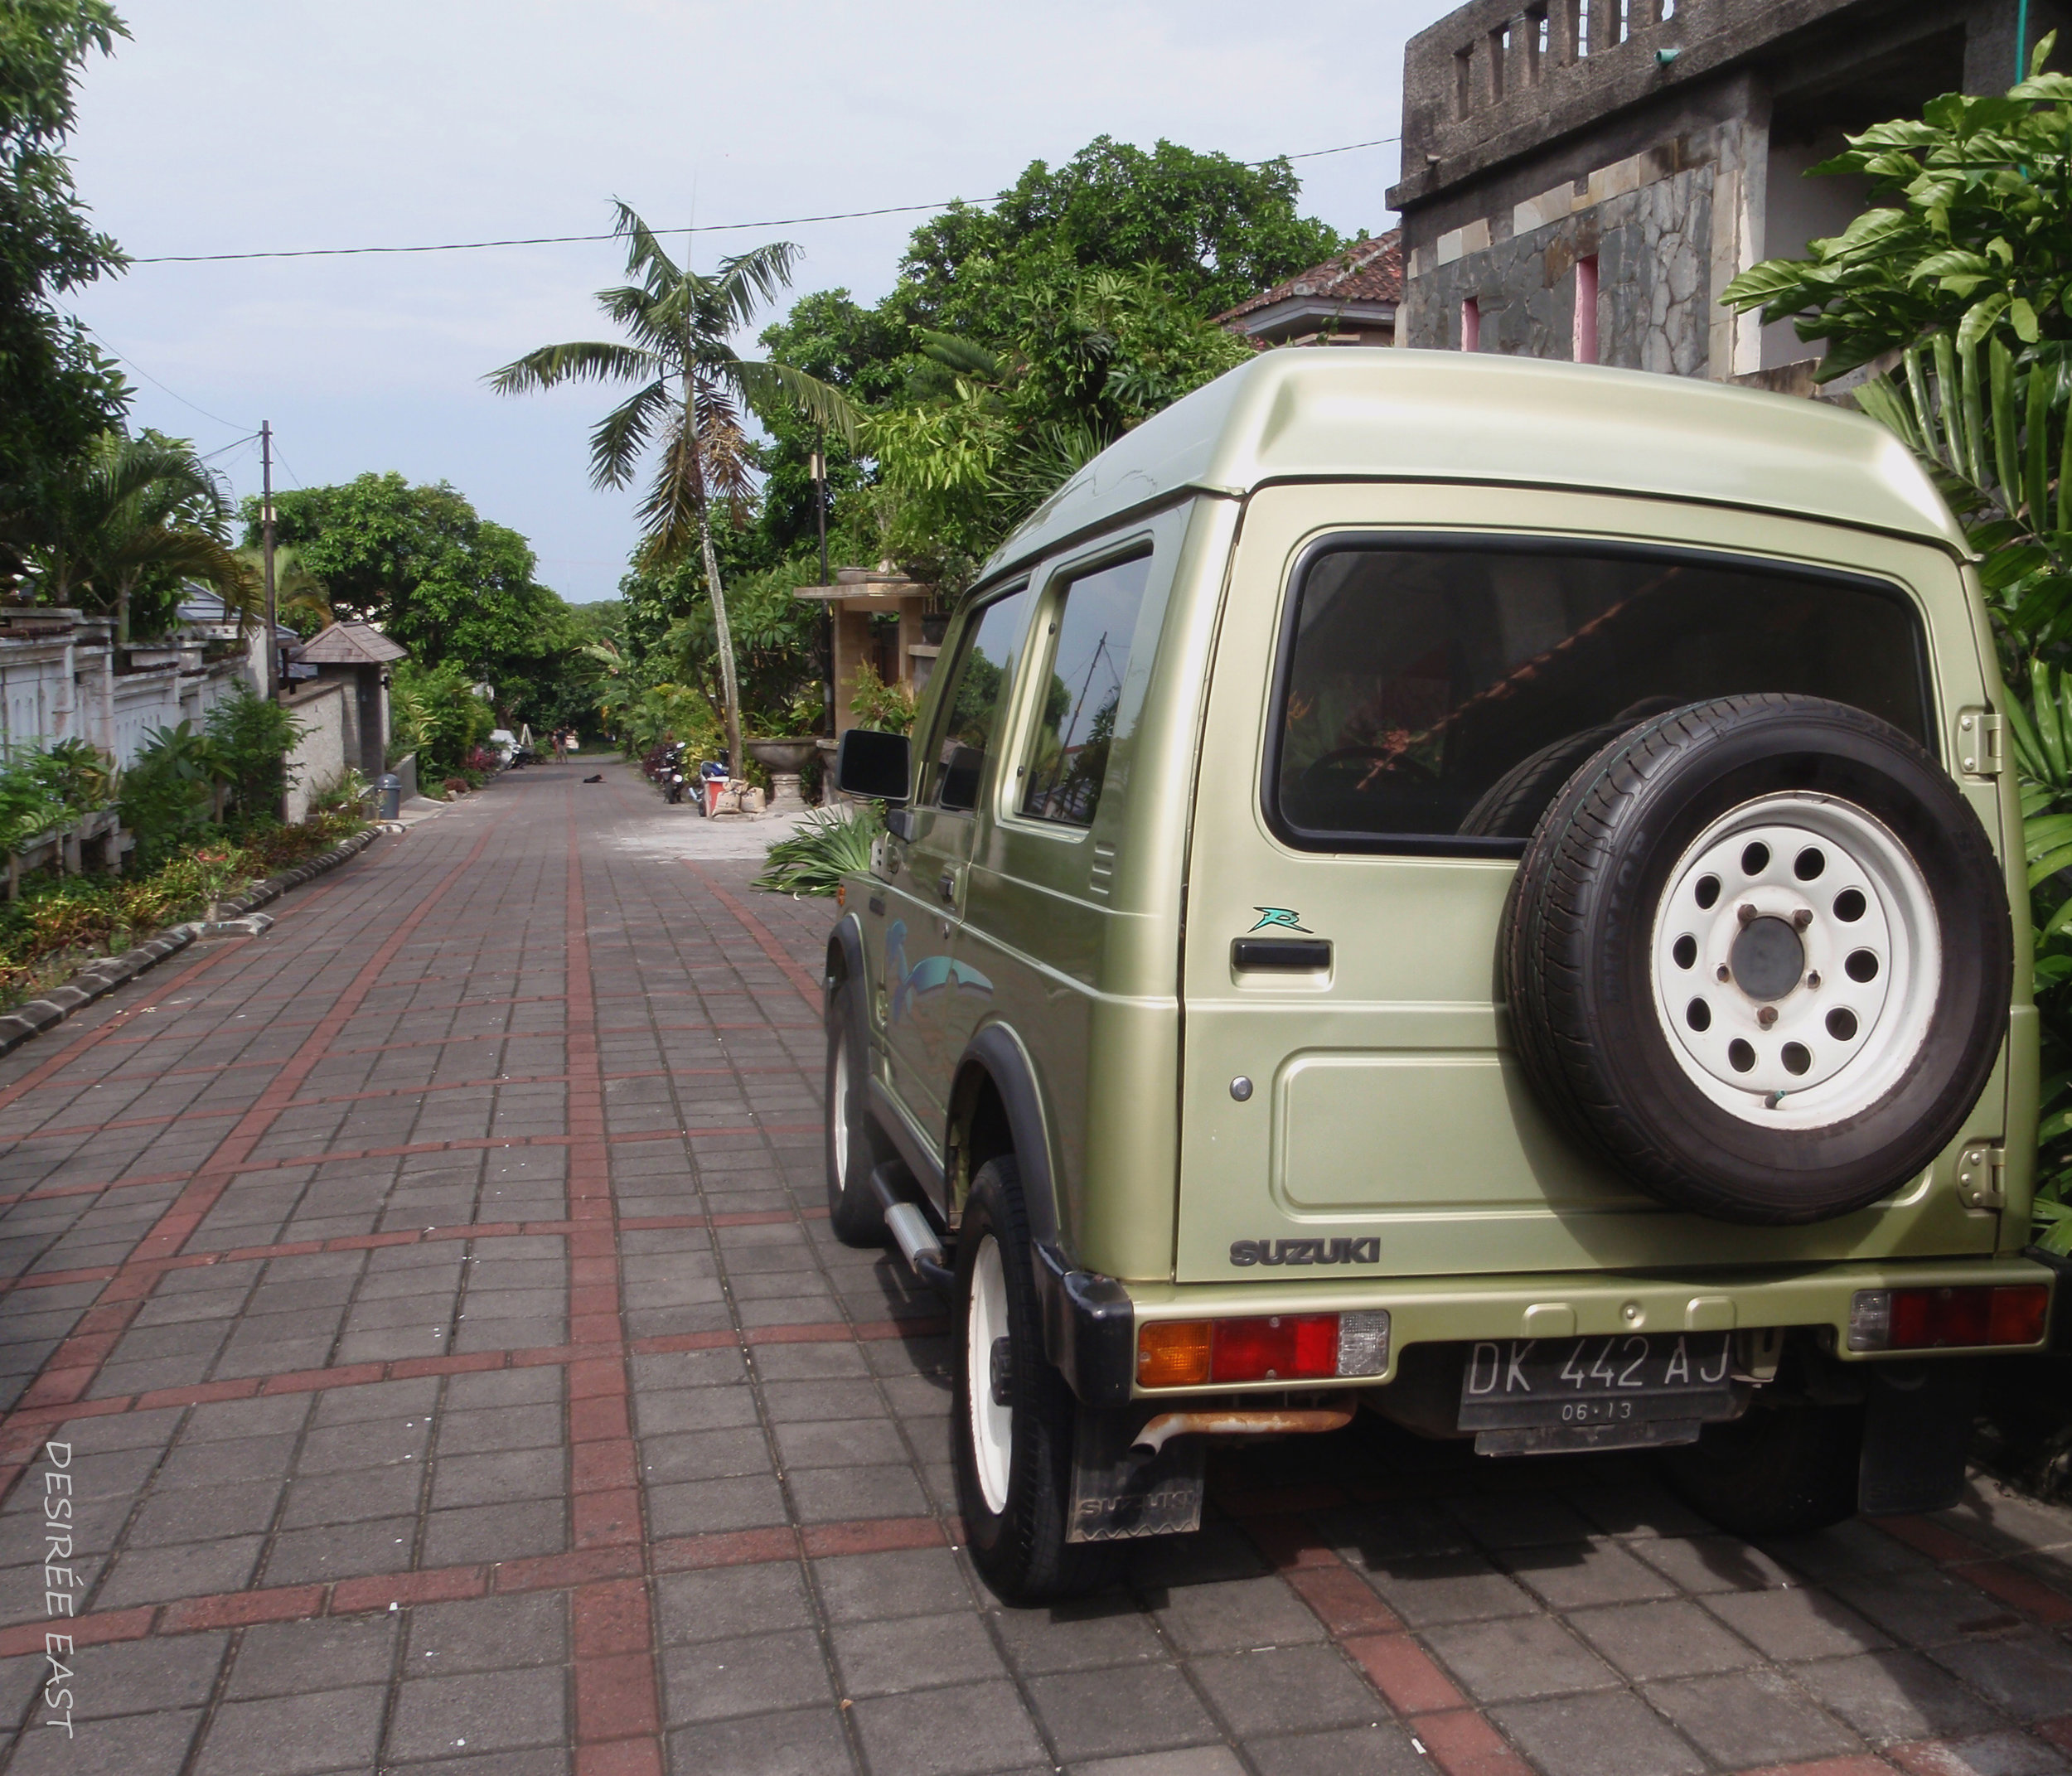 parking at andree homestay. bali, indonesia. photo by desiree east